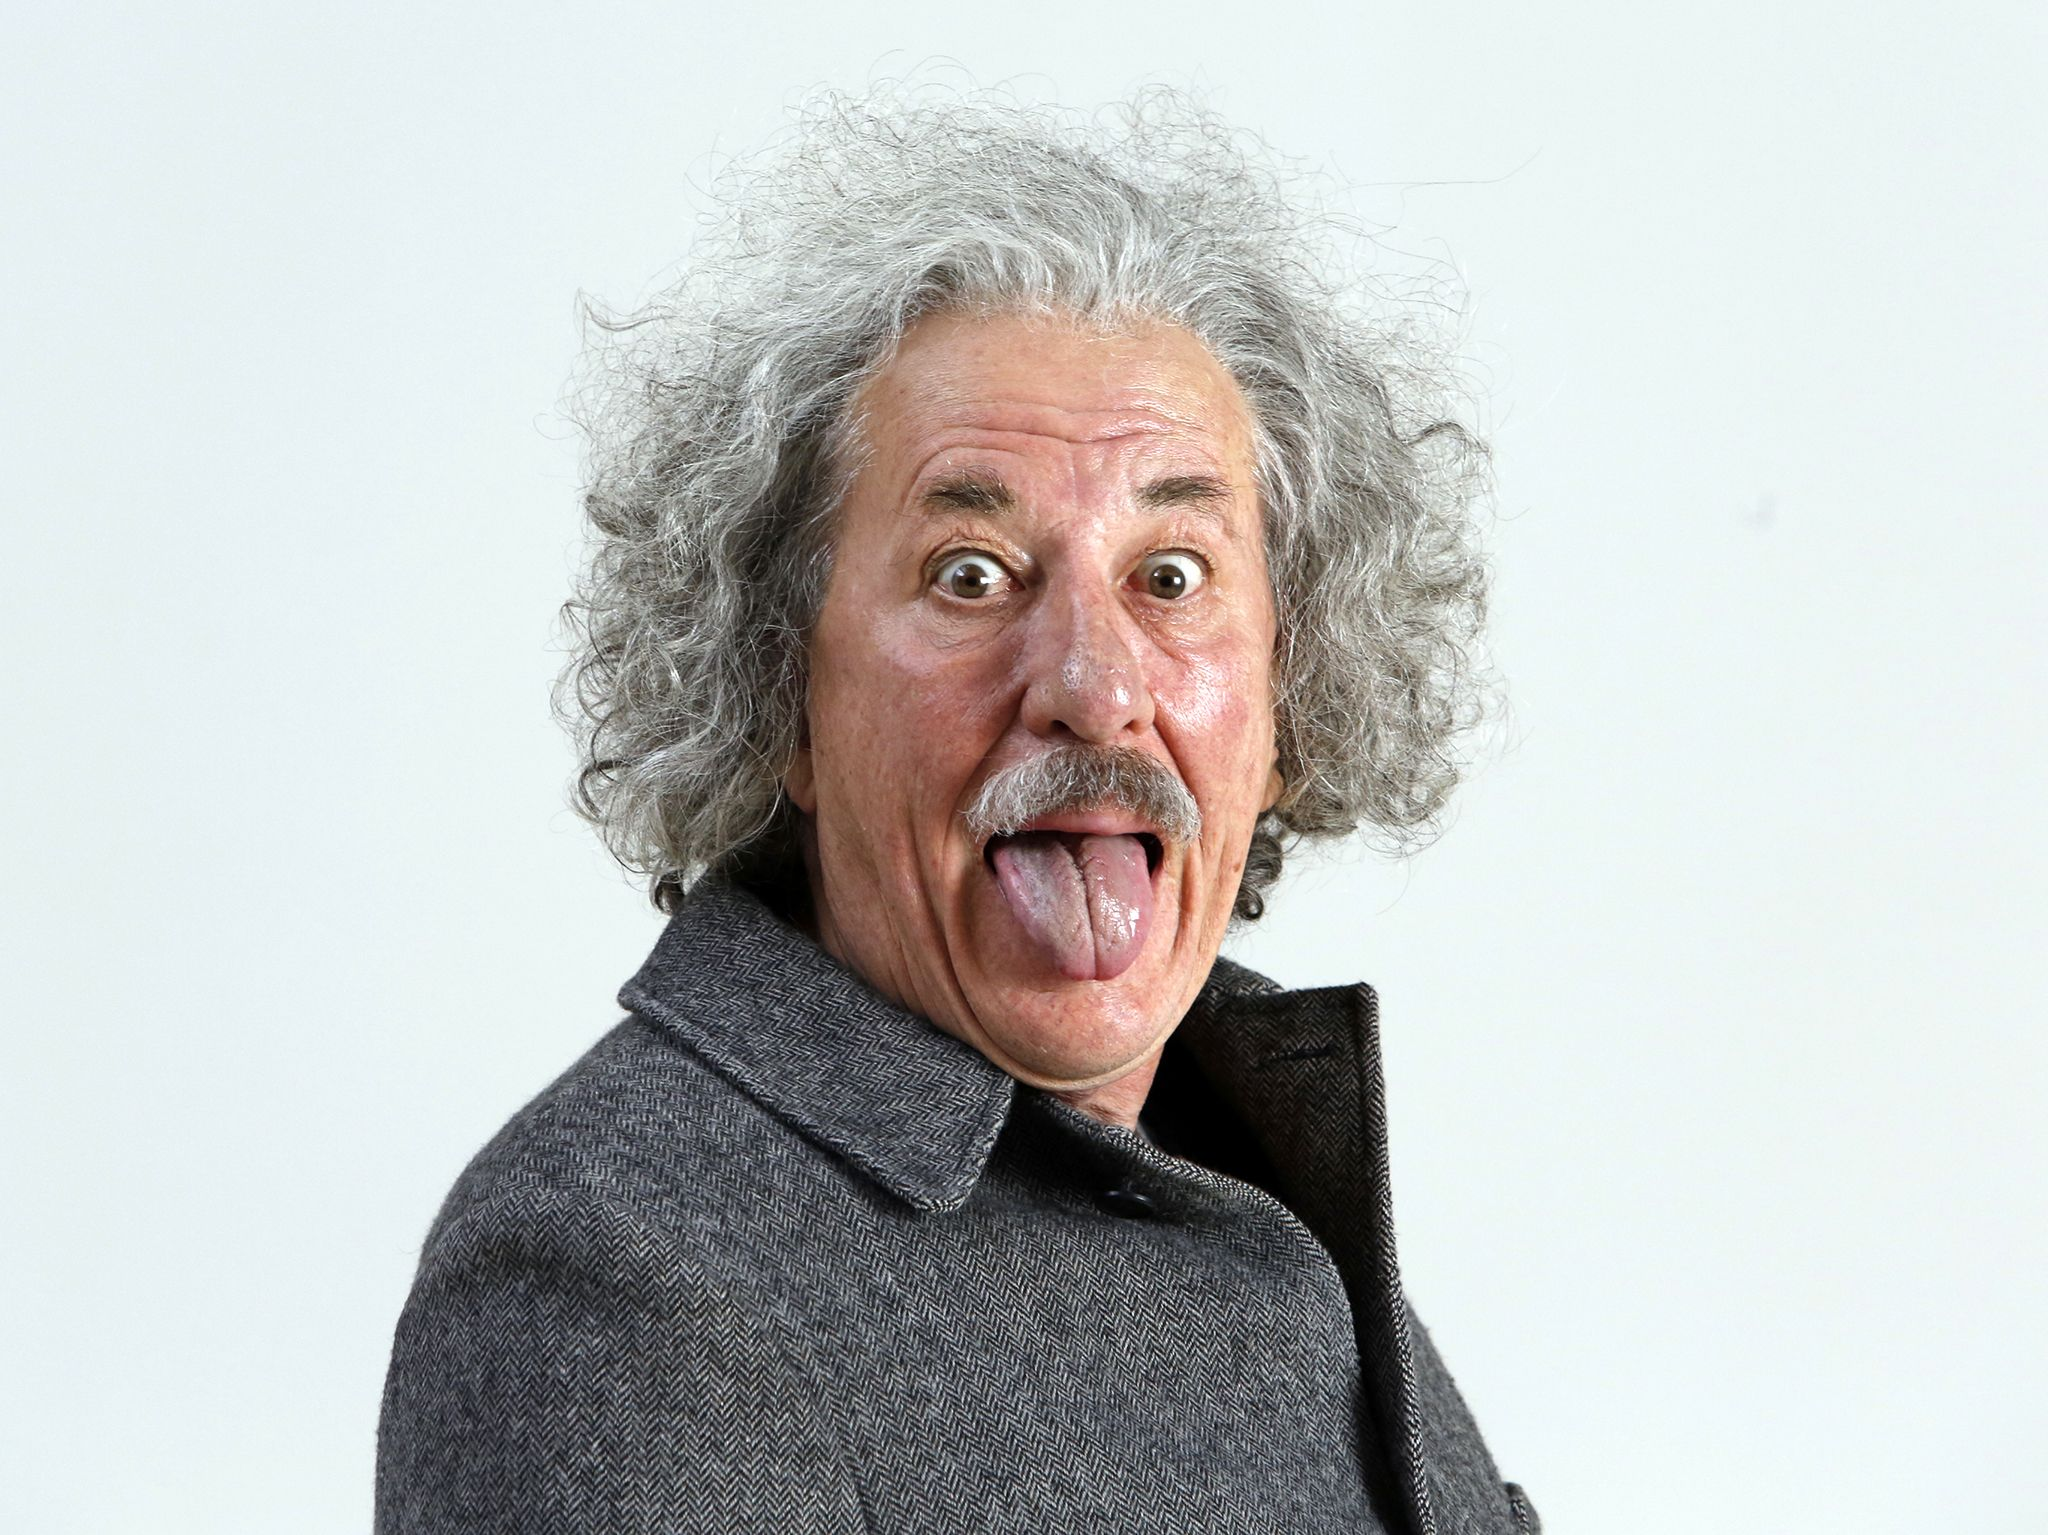 Czech Republic: Geoffrey Rush stars as Albert Einstein in National Geographic's Genius. [Photo of the day - 五月 2017]